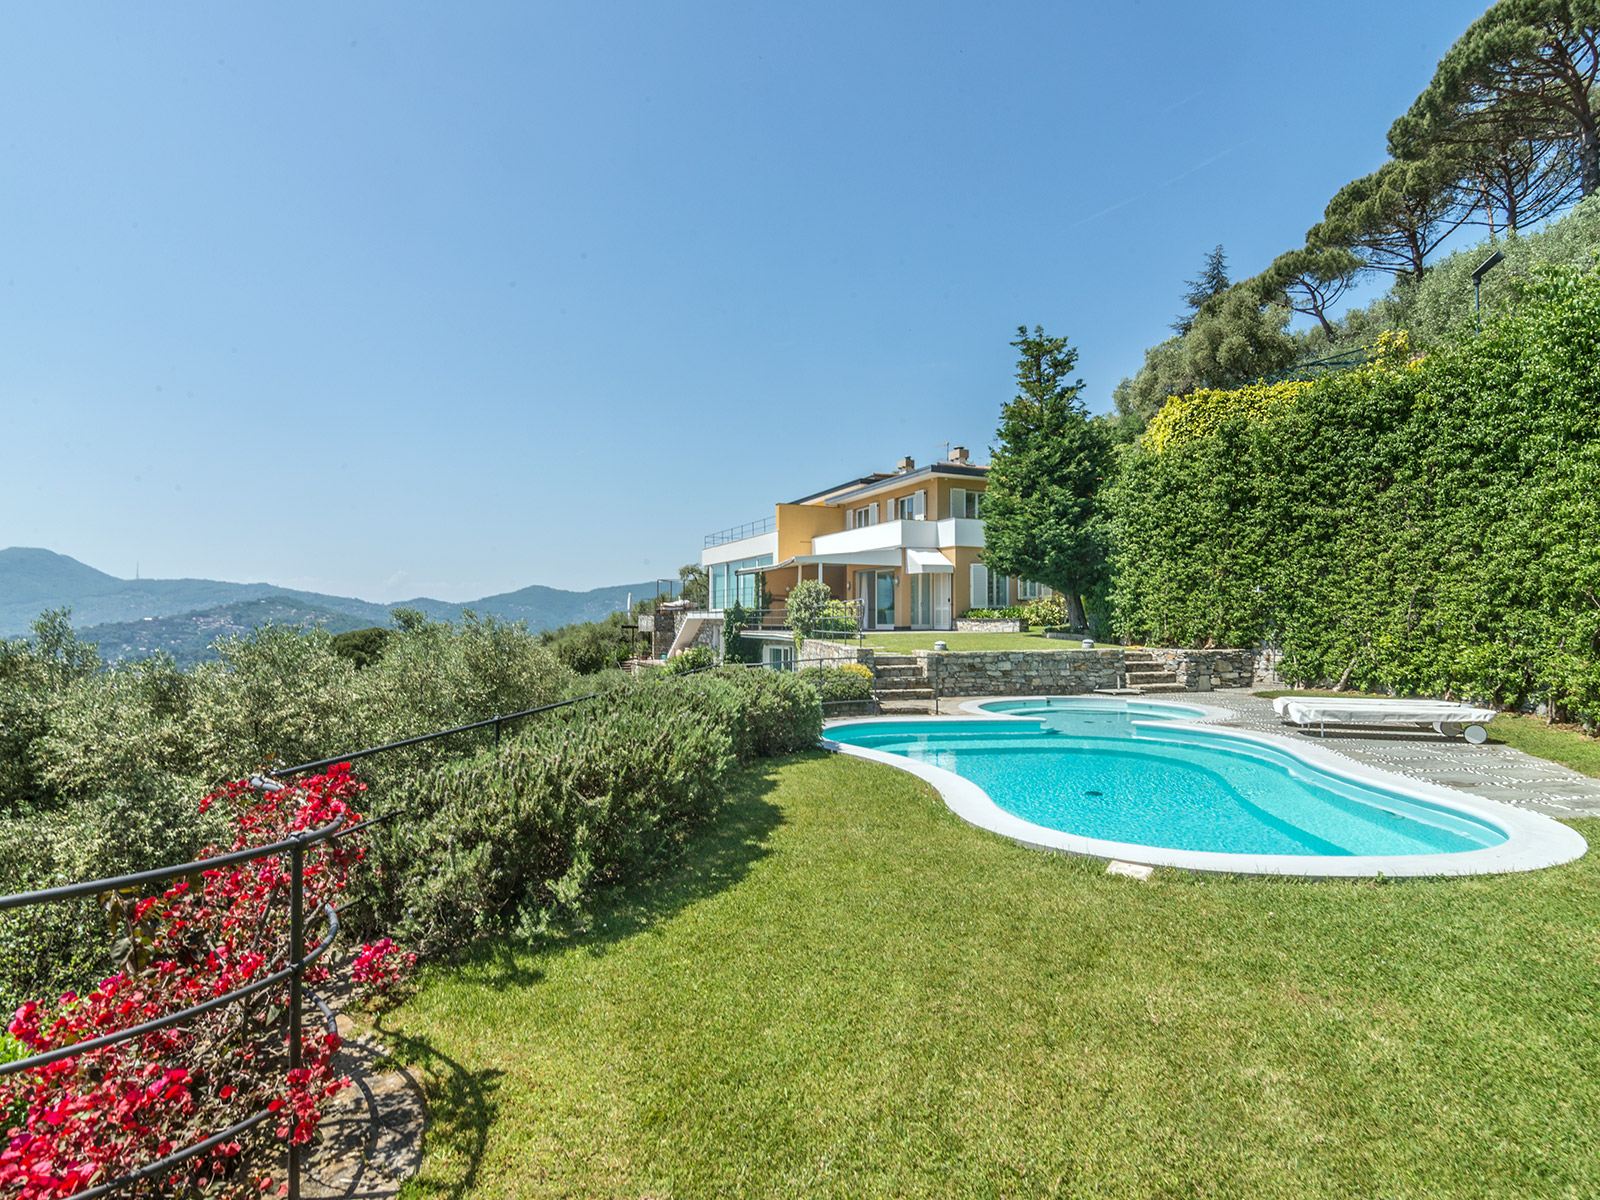 Single Family Home for Sale at Panoramic waterfront villa with pool Via Sant' Ambrogio Zoagli, Genoa 16035 Italy